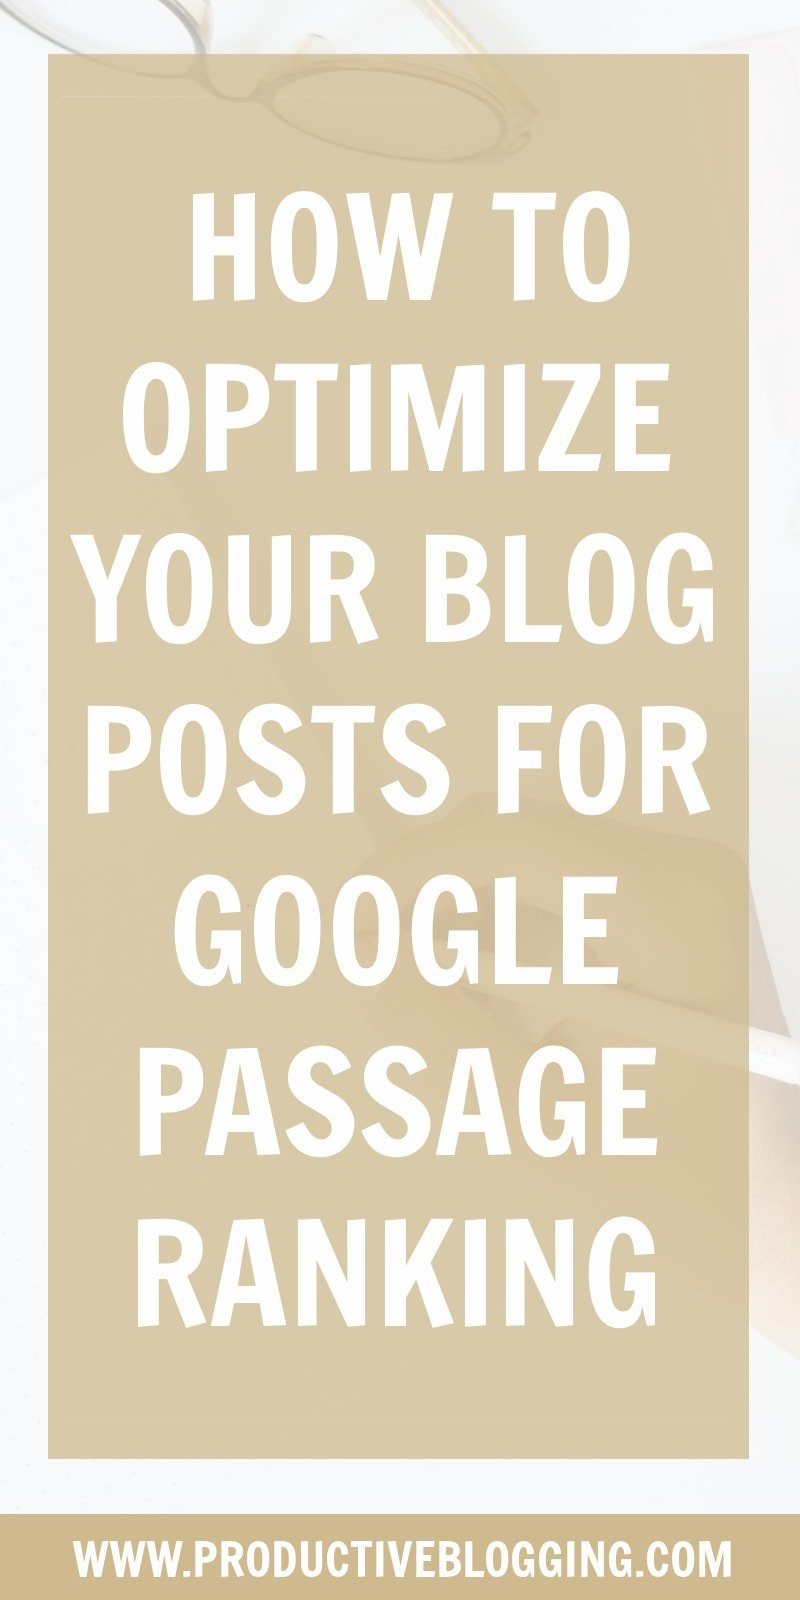 Google recently launched Passage Ranking. But what exactly is Passage Ranking? How does it differ from Passage Indexing? And how can you optimize blog posts for Passage Ranking? #passageranking #passageindexing #googlepassageranking #googleranking #SEOforbloggers #SEOforbeginners #beginnersSEO #SEO #SEOtips #SEOhacks #searchengineoptimization #growyourblog #bloggrowth #bloggrowthhacks #bloggingtips #blogtips #blogginghacks #bloghacks #blogging #bloggers #blogsmarternotharder #productiveblogging